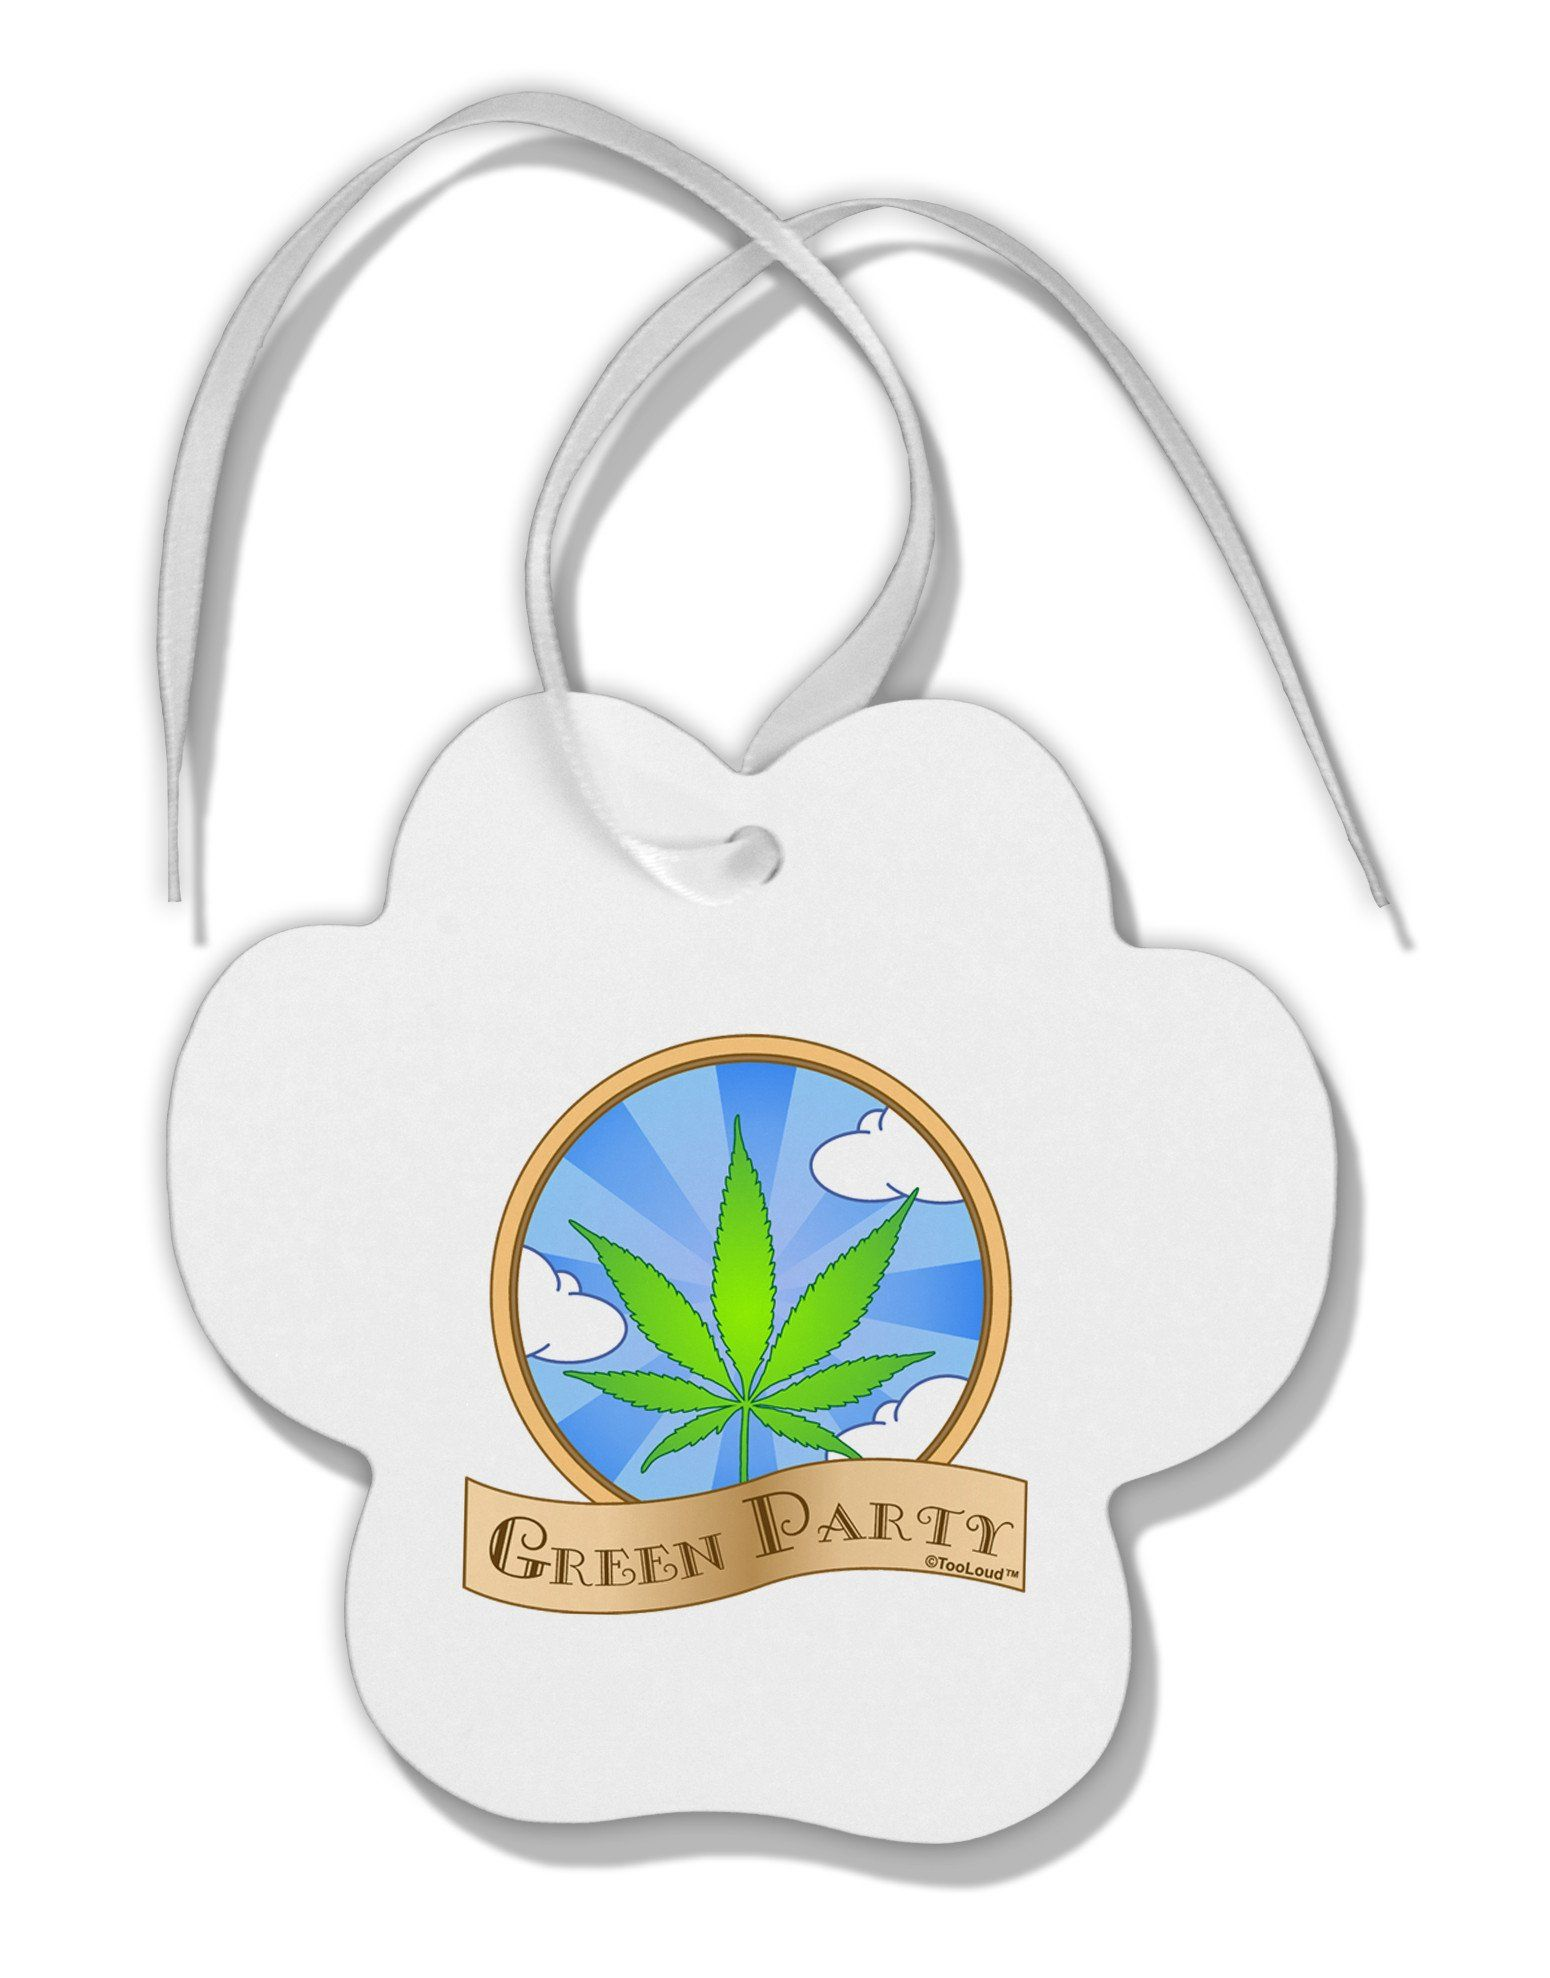 Green Party Symbol Paw Print Shaped Ornament Green Party And Products